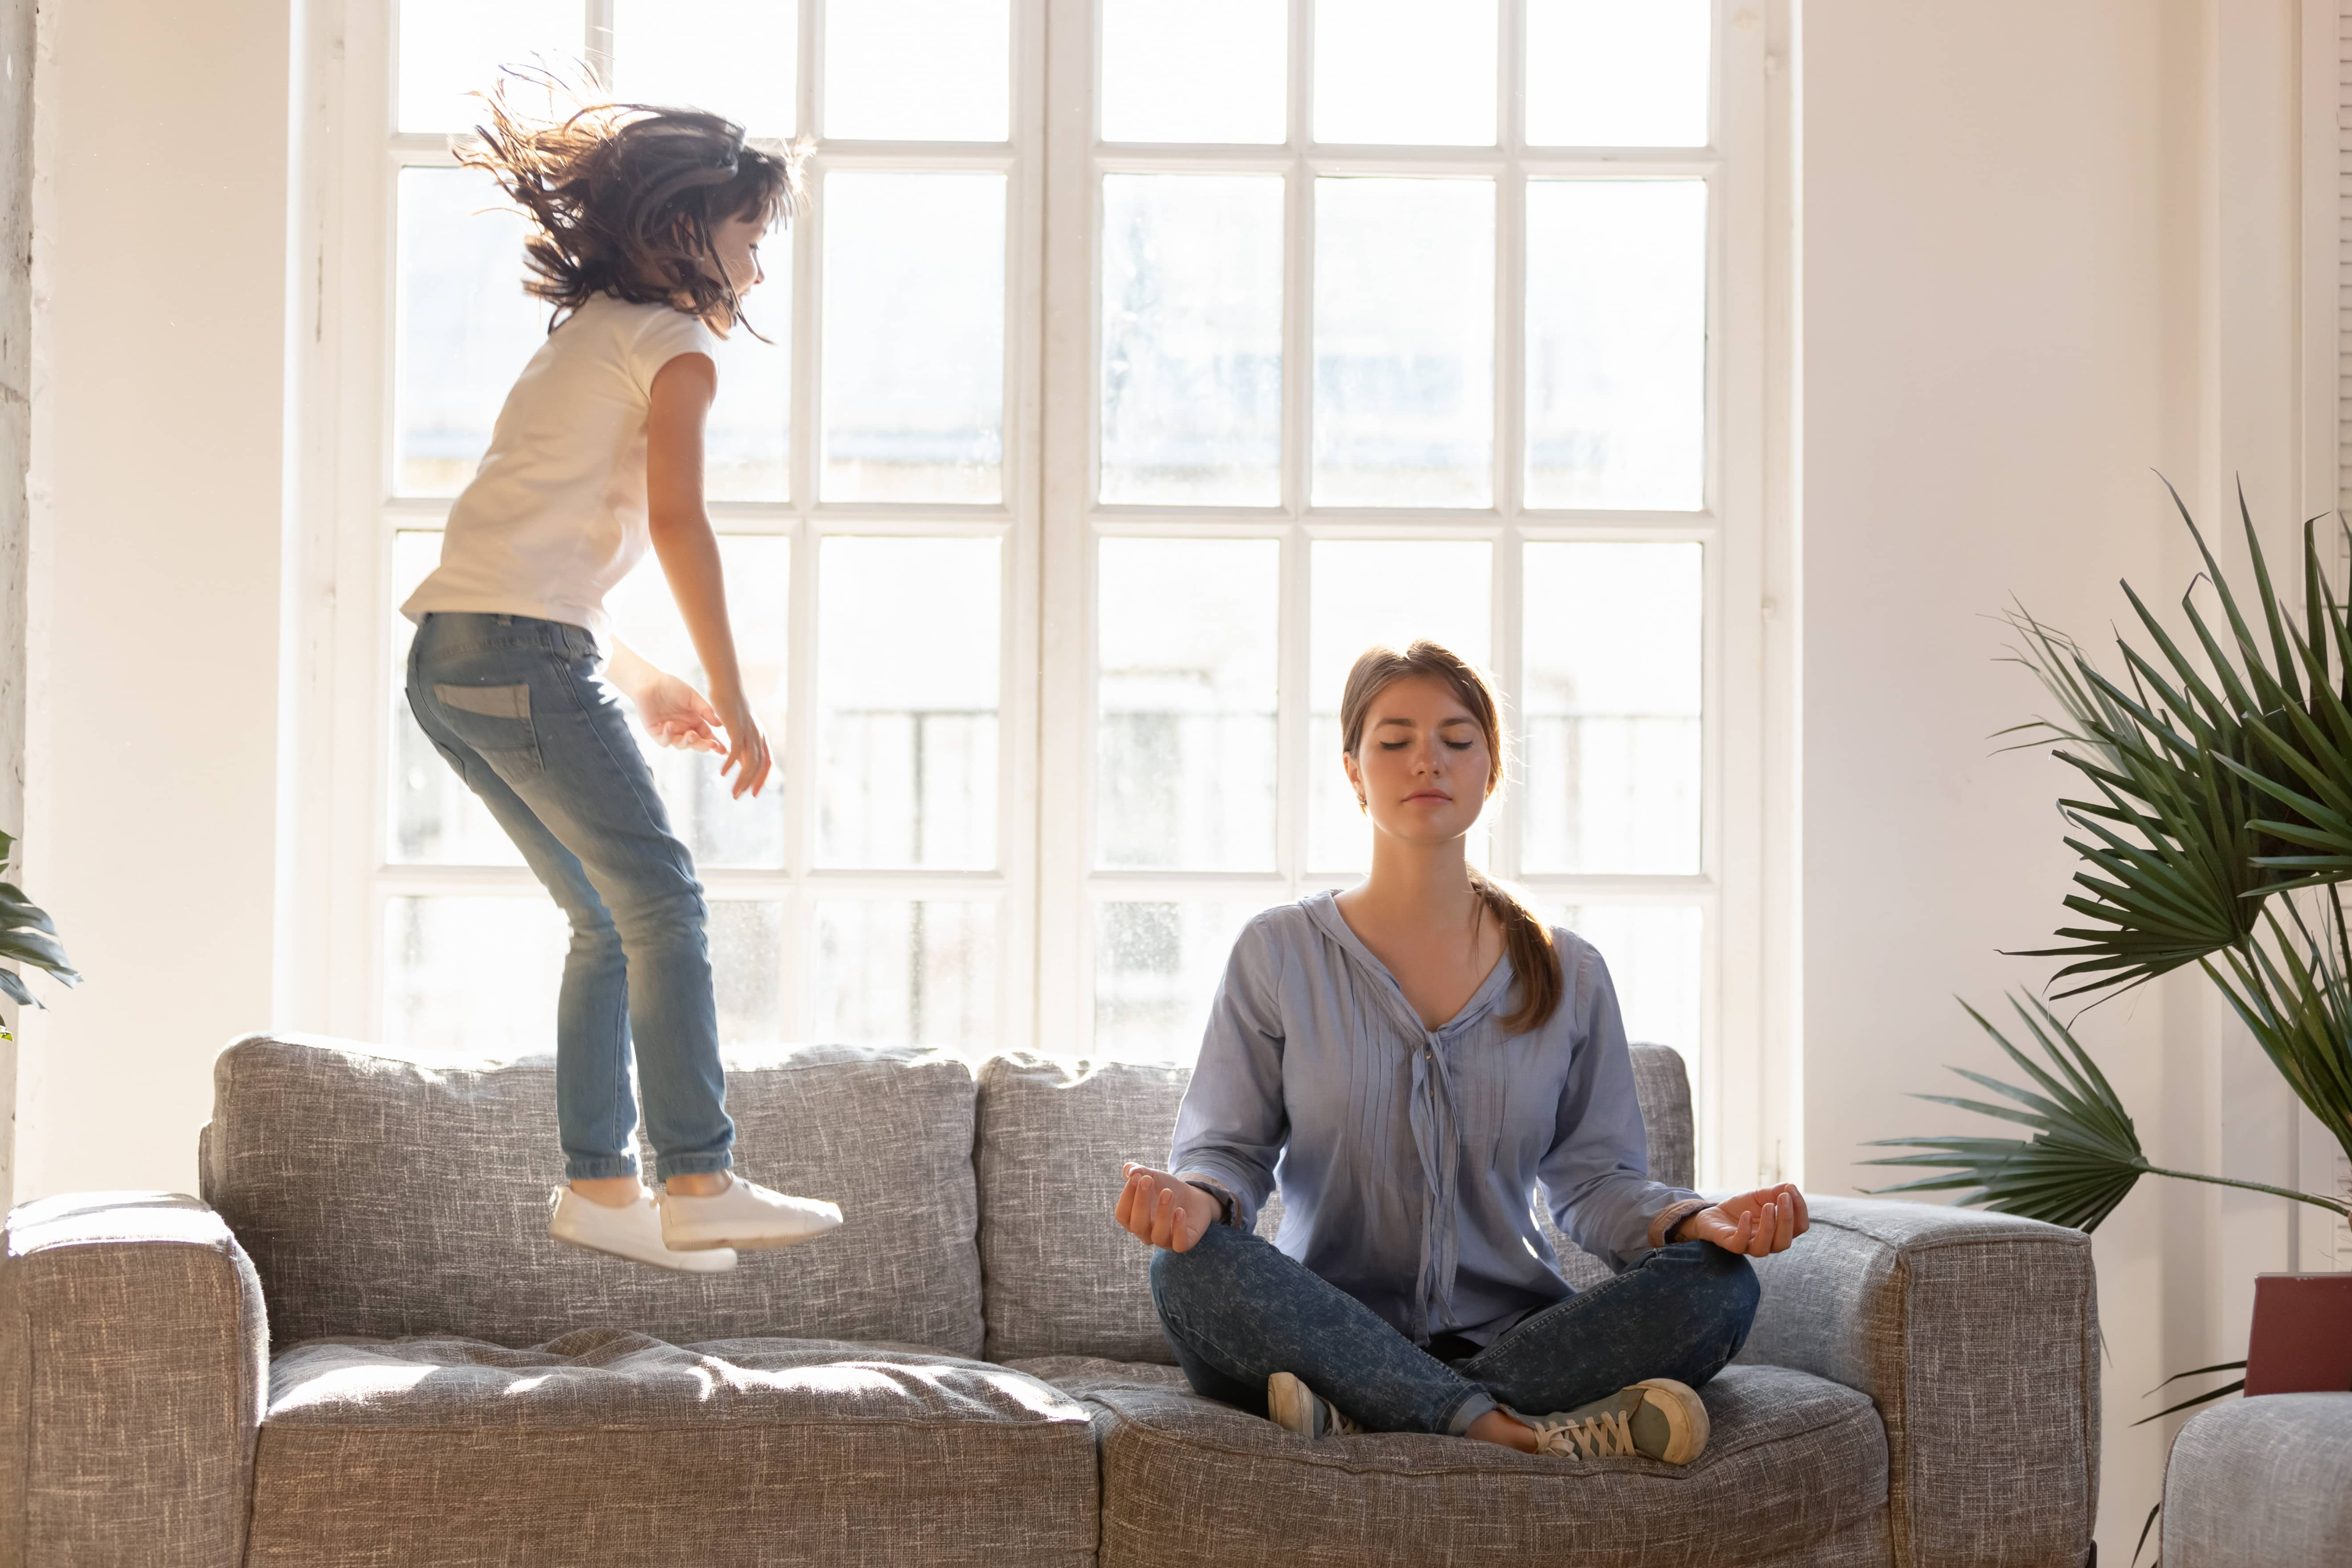 Mom in mindfulness practice as young girl jumps on couch